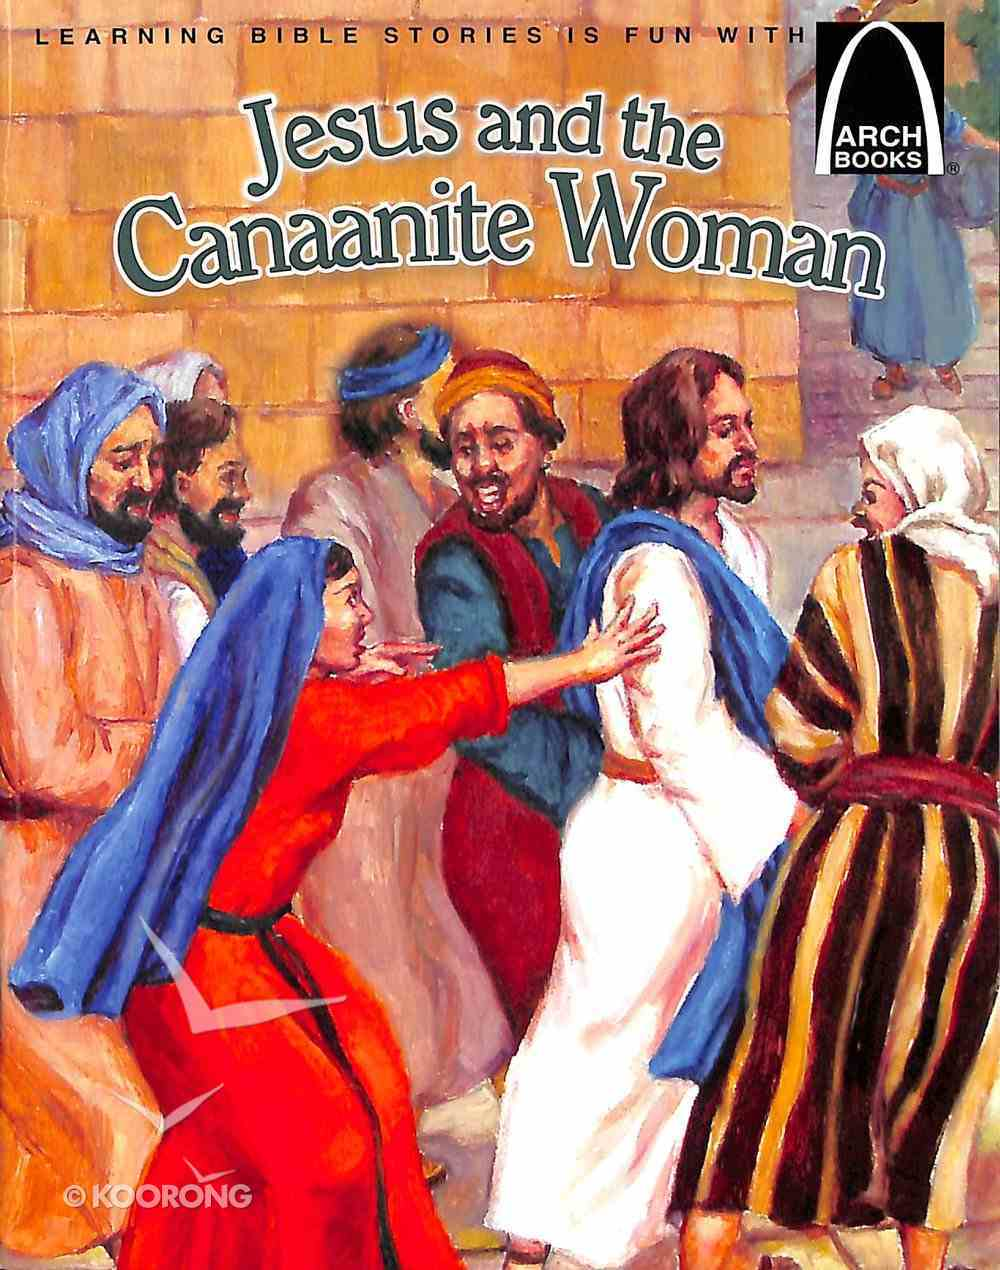 Jesus and the Canaanite Woman (Arch Books Series) Paperback